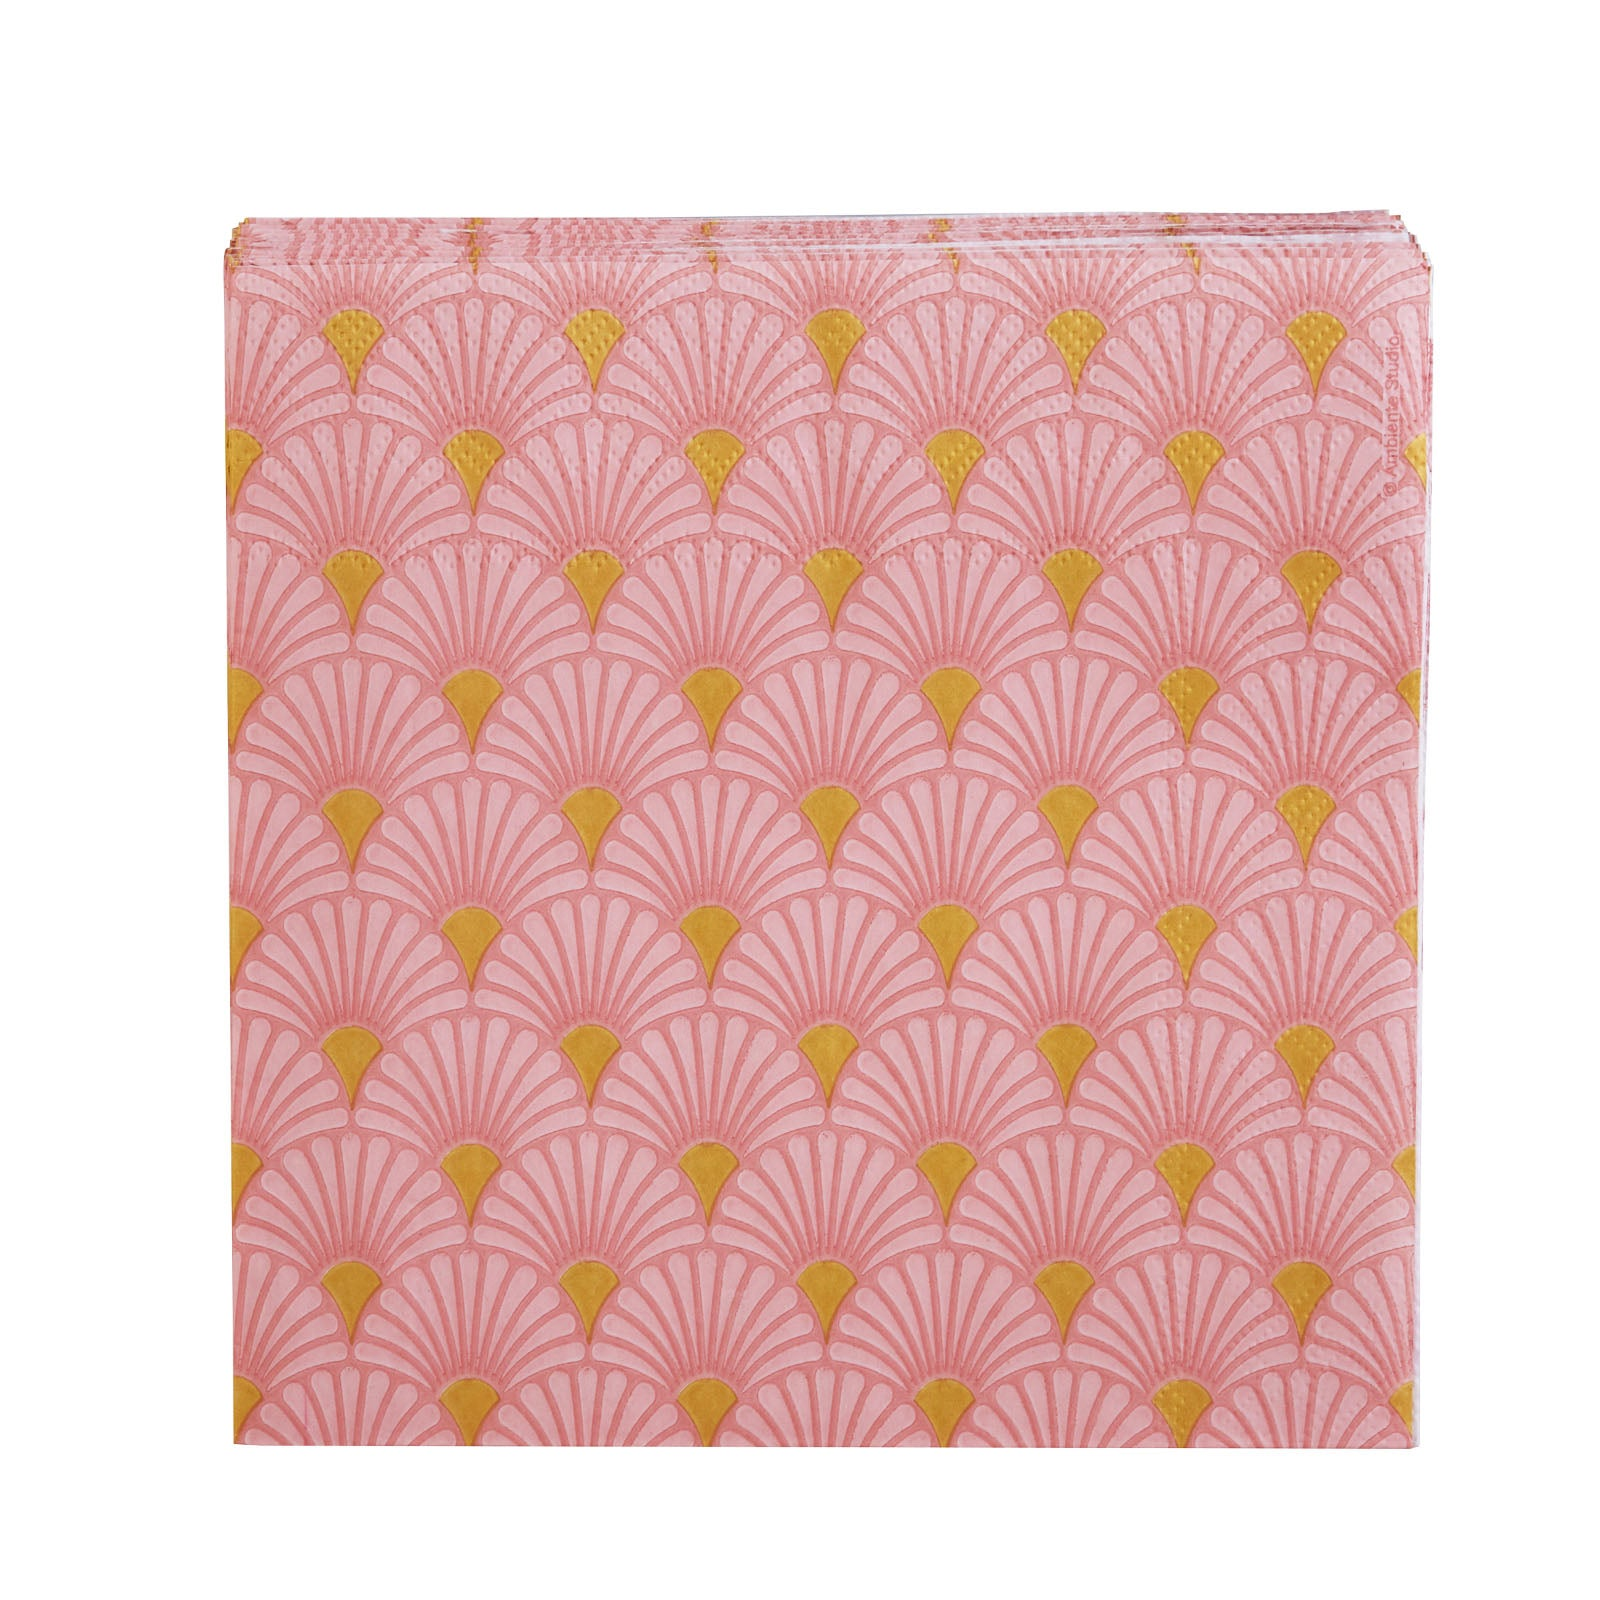 Karaca Art Deco Rose / gold Napkin 153.19.01.1235